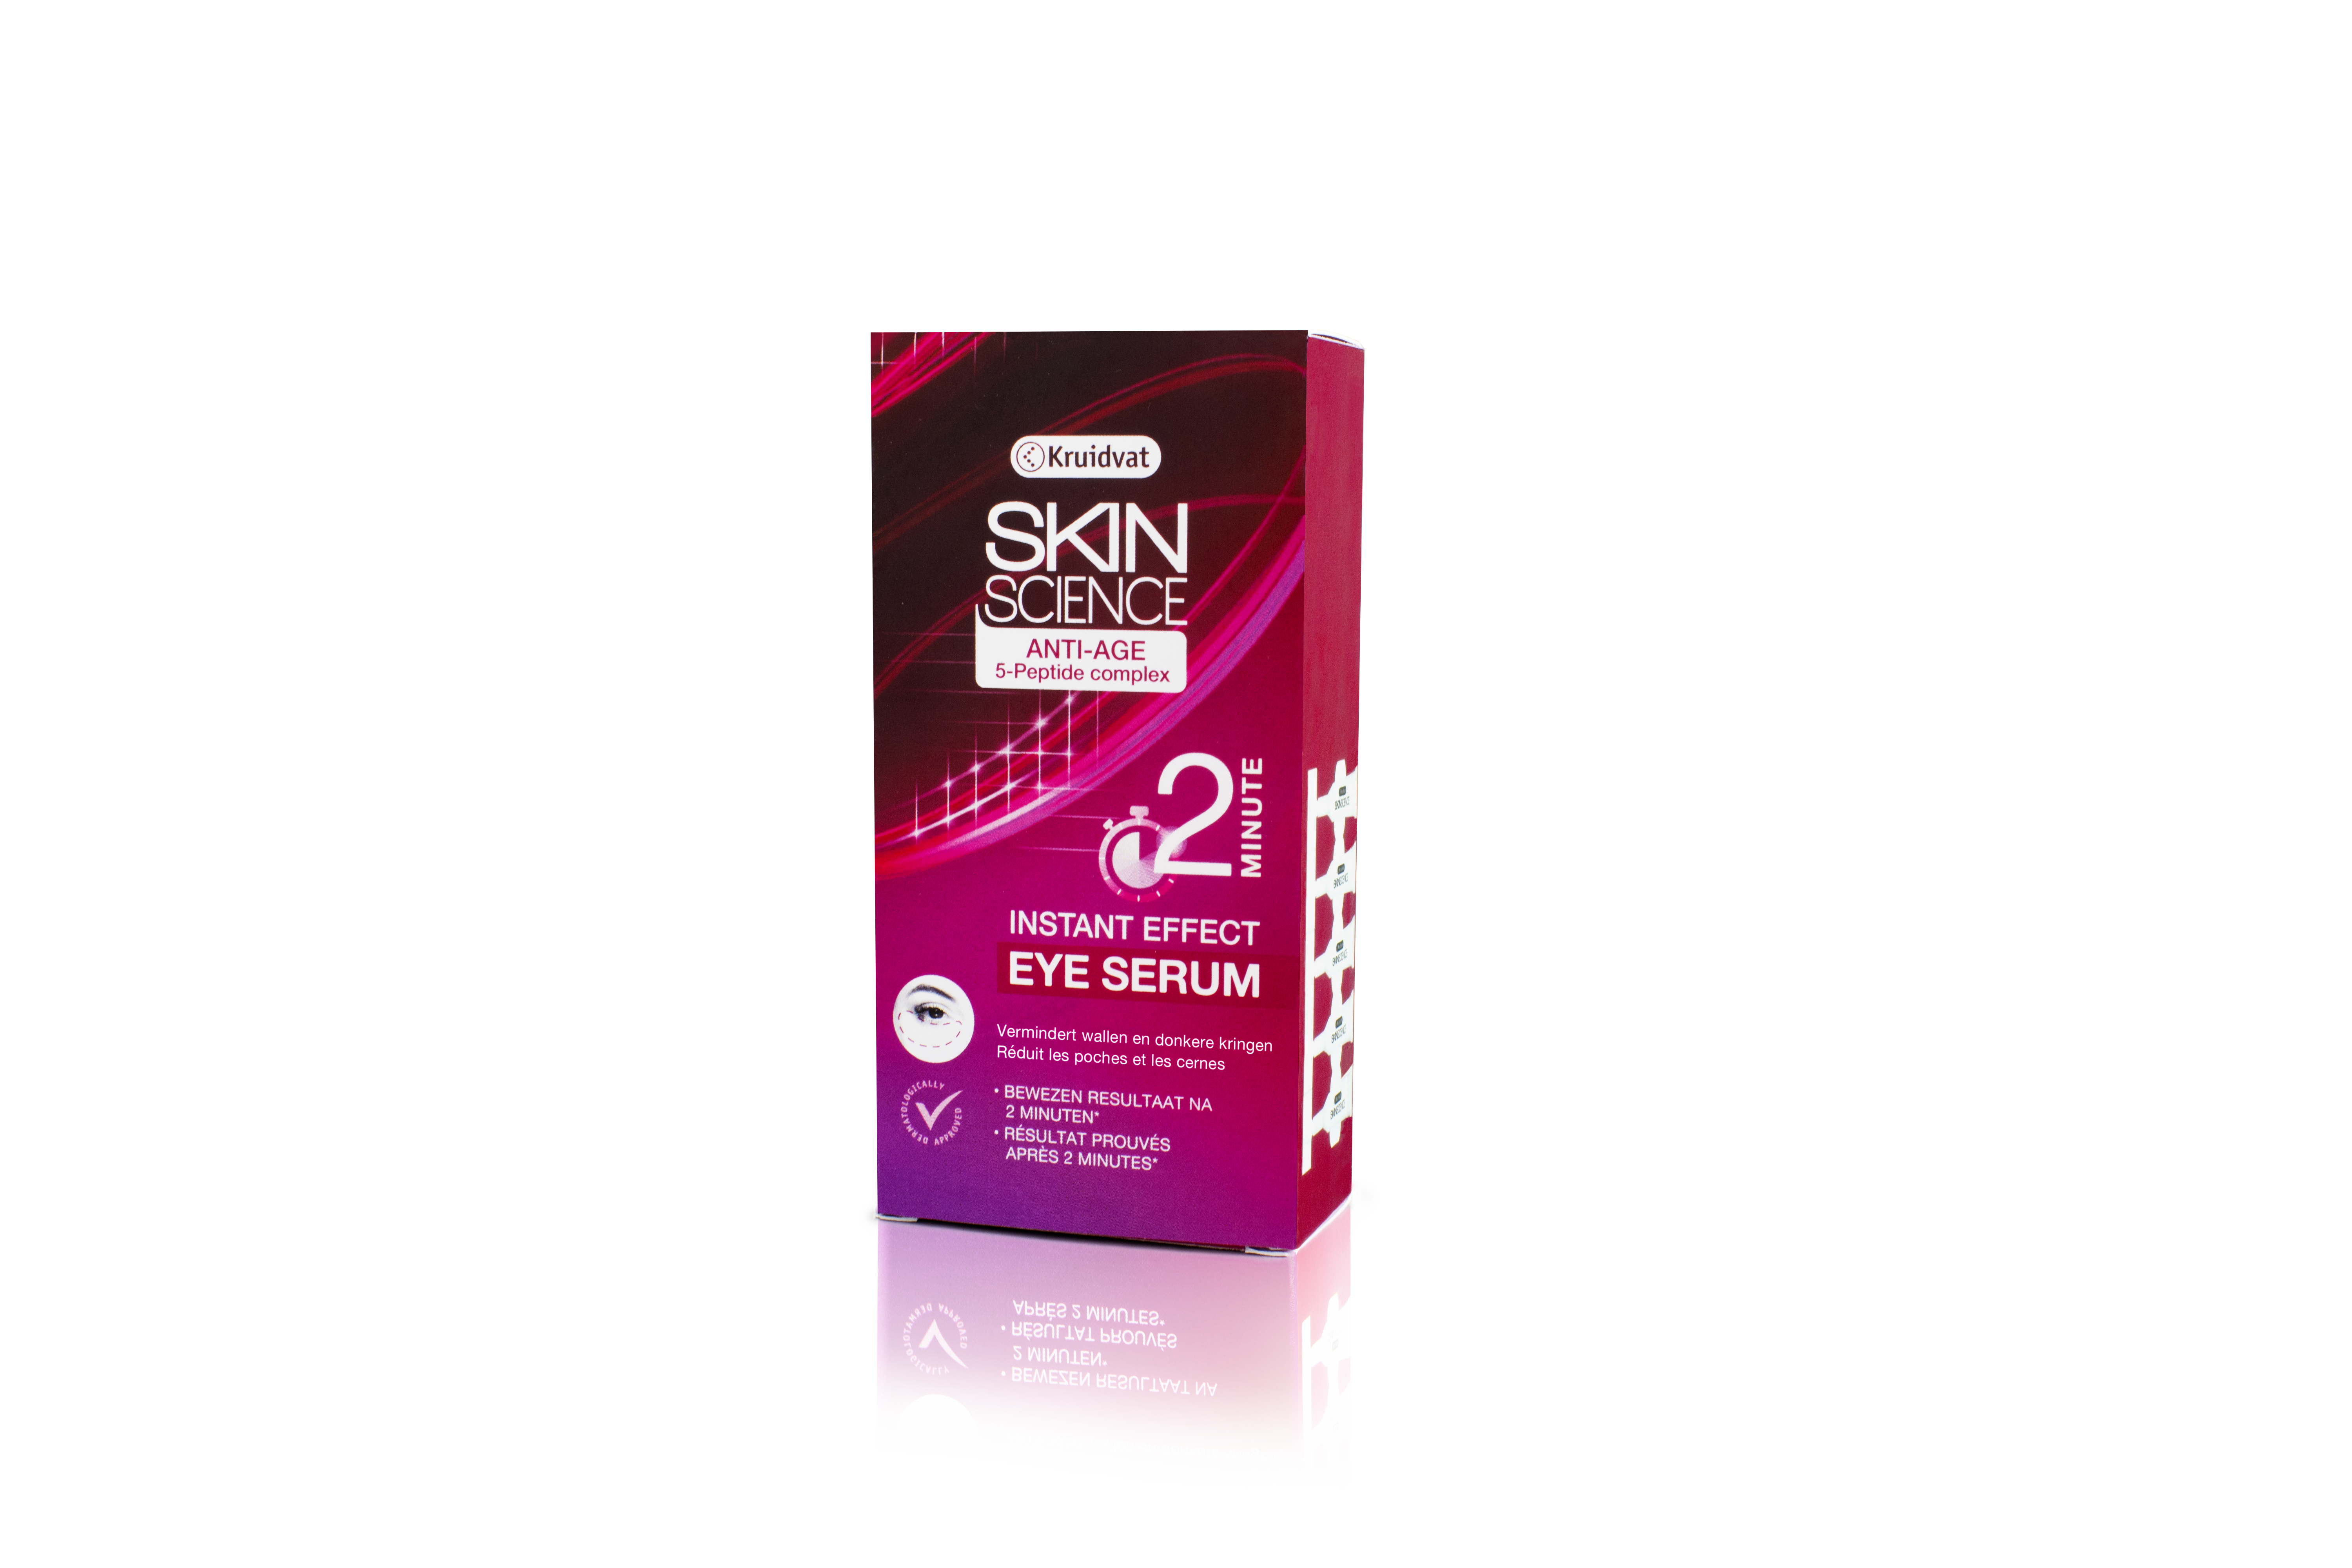 Skin science instant effect